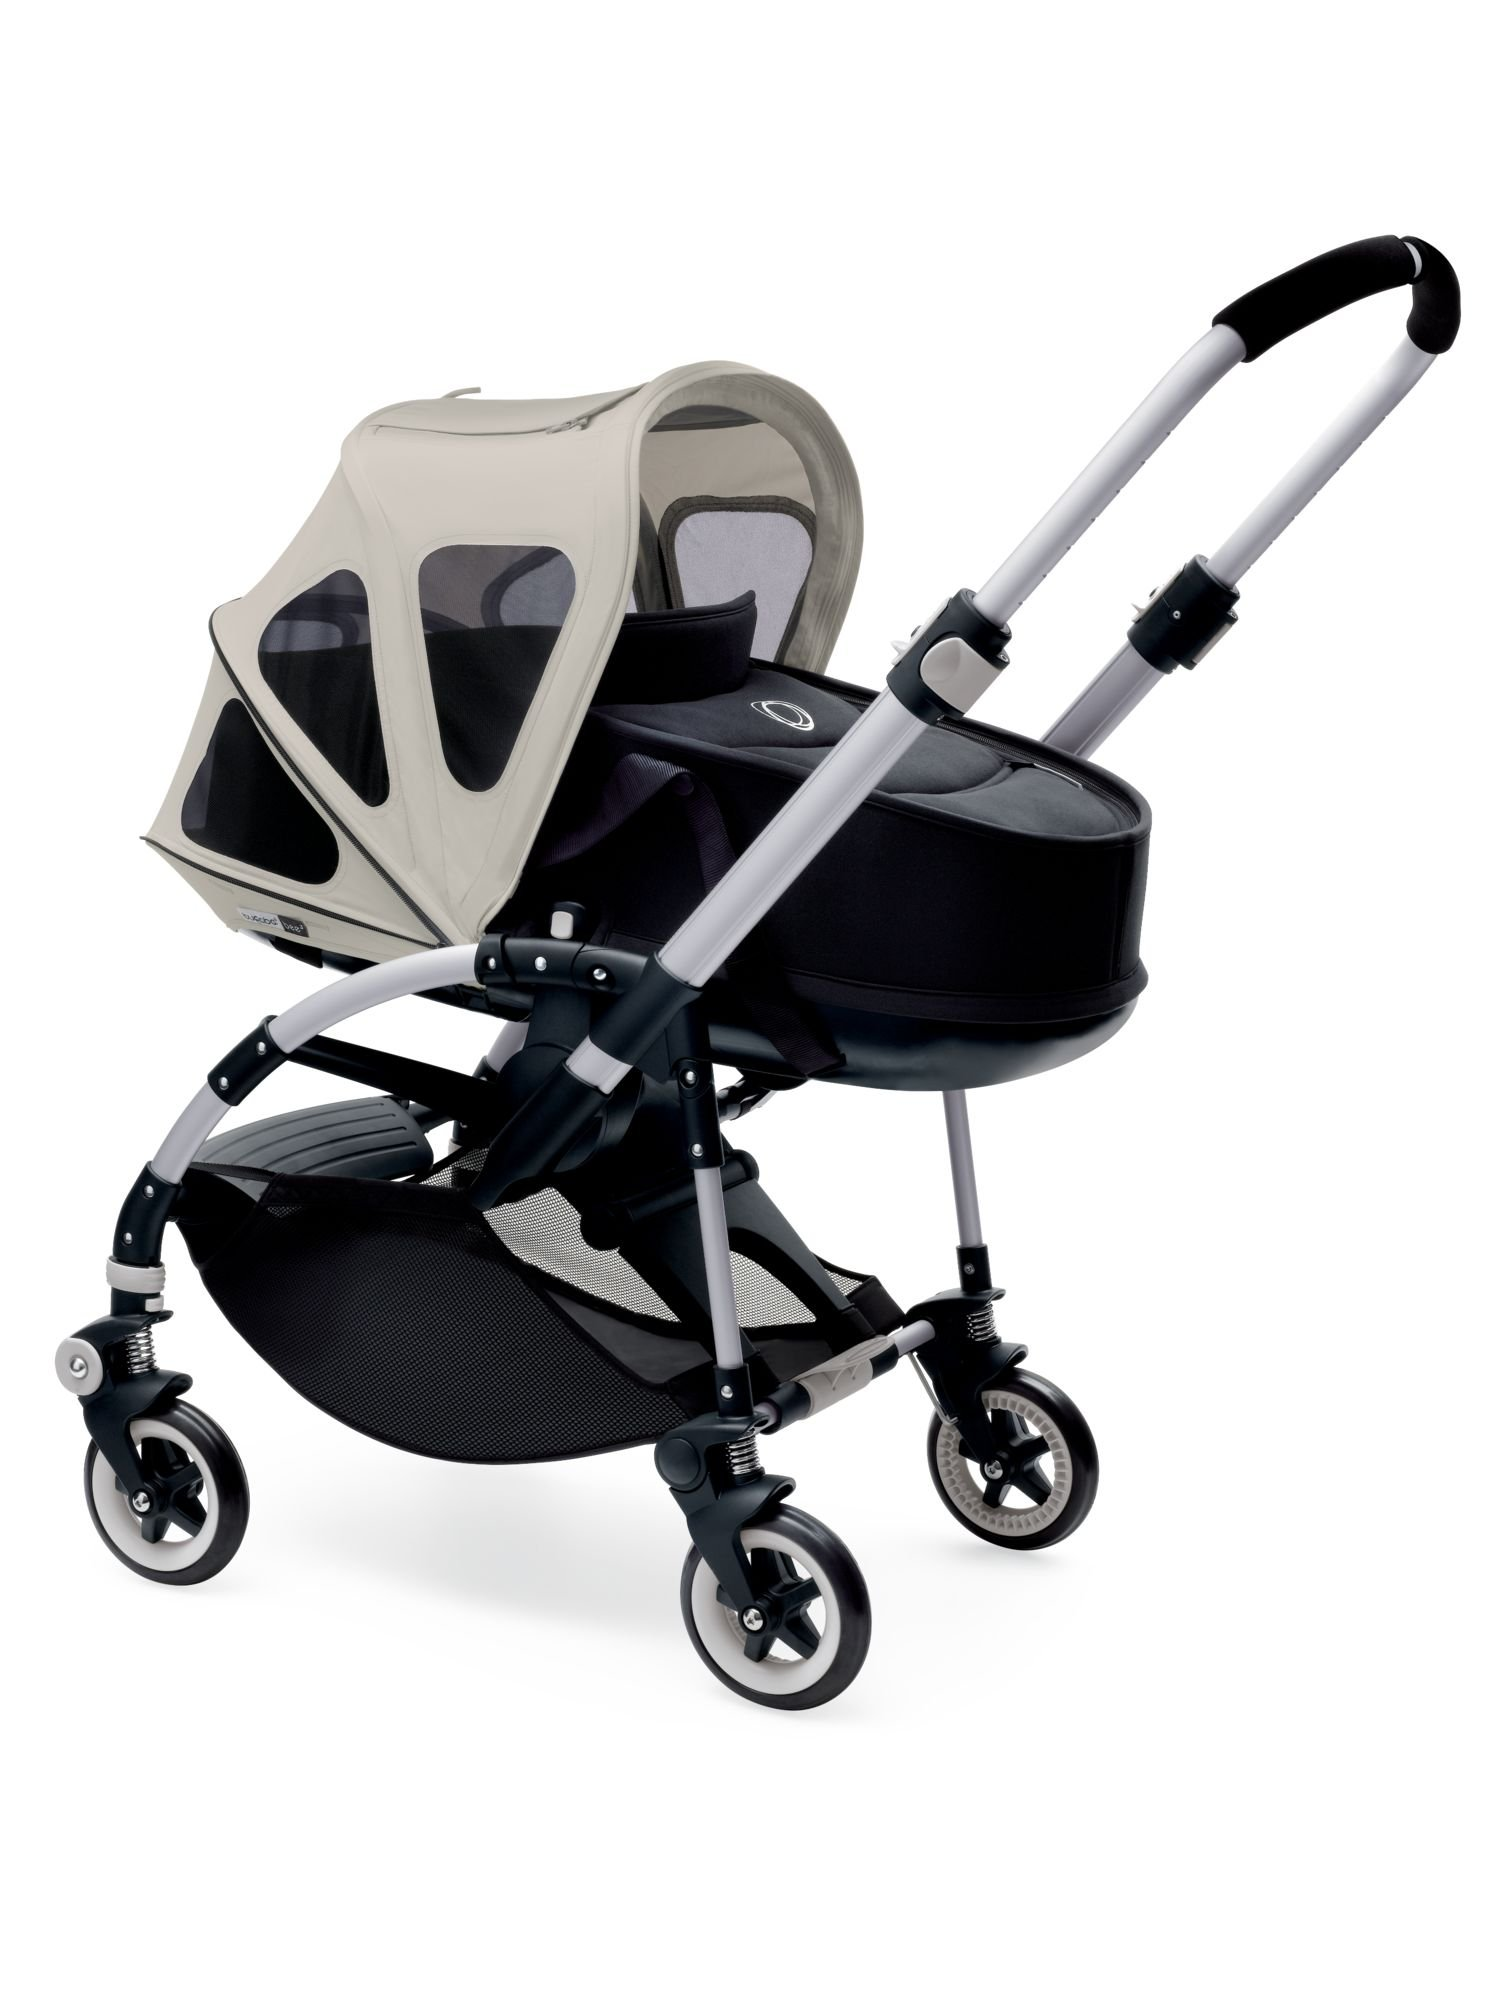 Bugaboo Bee Breezy Sun Canopy, Arctic Grey - Extendable Sun Canopy with UPF Sun Protection and Mesh Ventilation Panels by Bugaboo (Image #2)